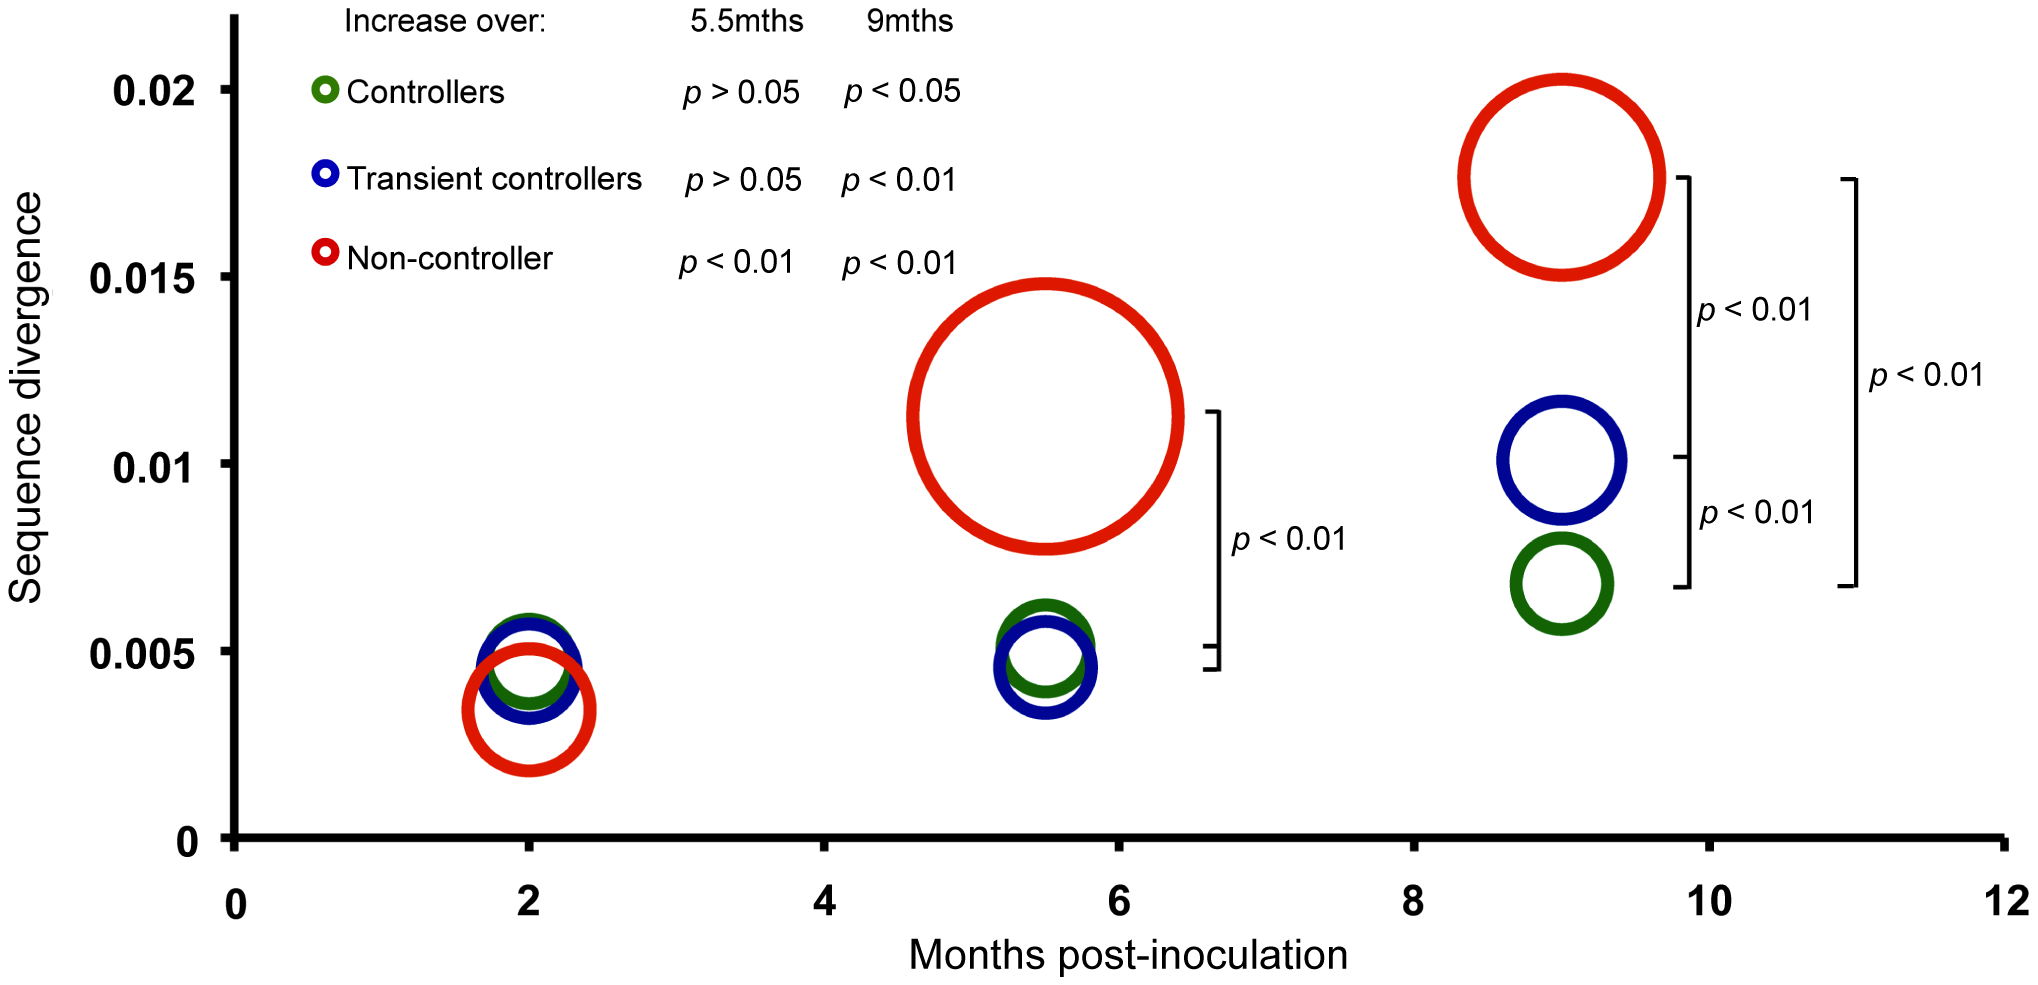 Sequence divergence from SIVmac239 in controller, transient-controller and non-controller macaques.